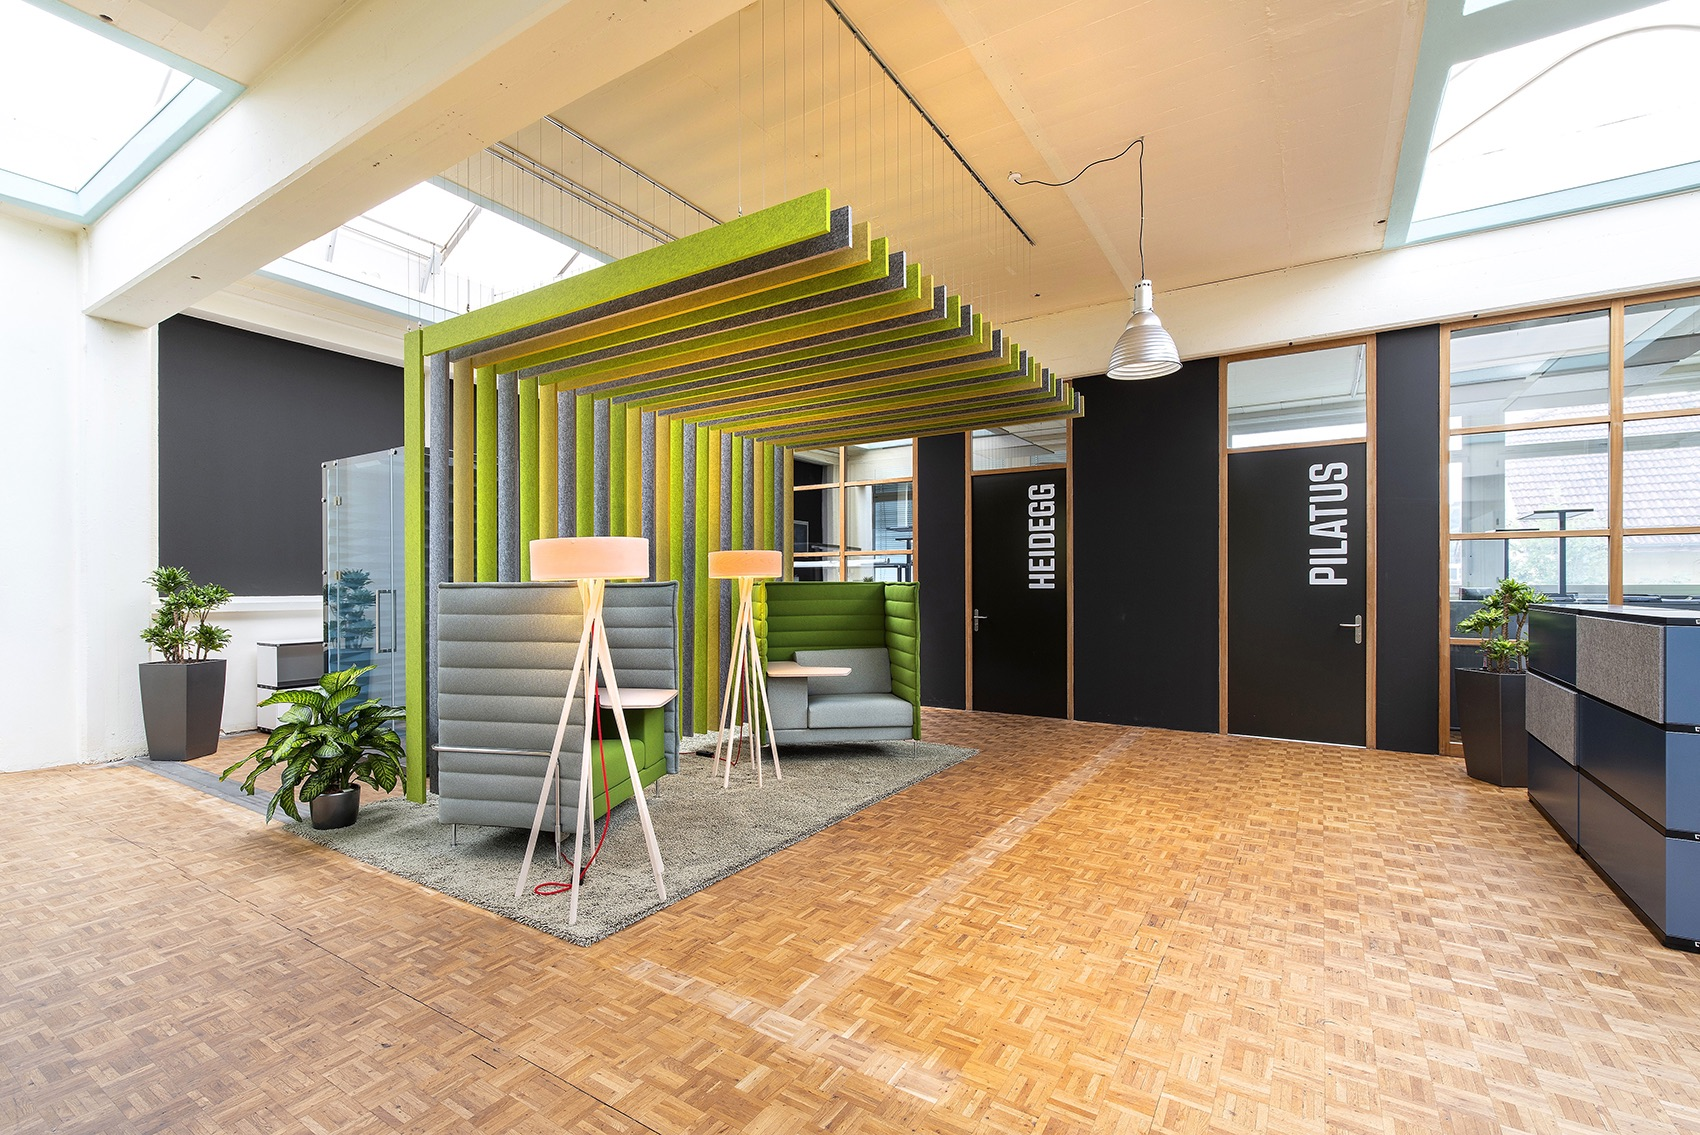 6280-coworking-switzerland-office-36